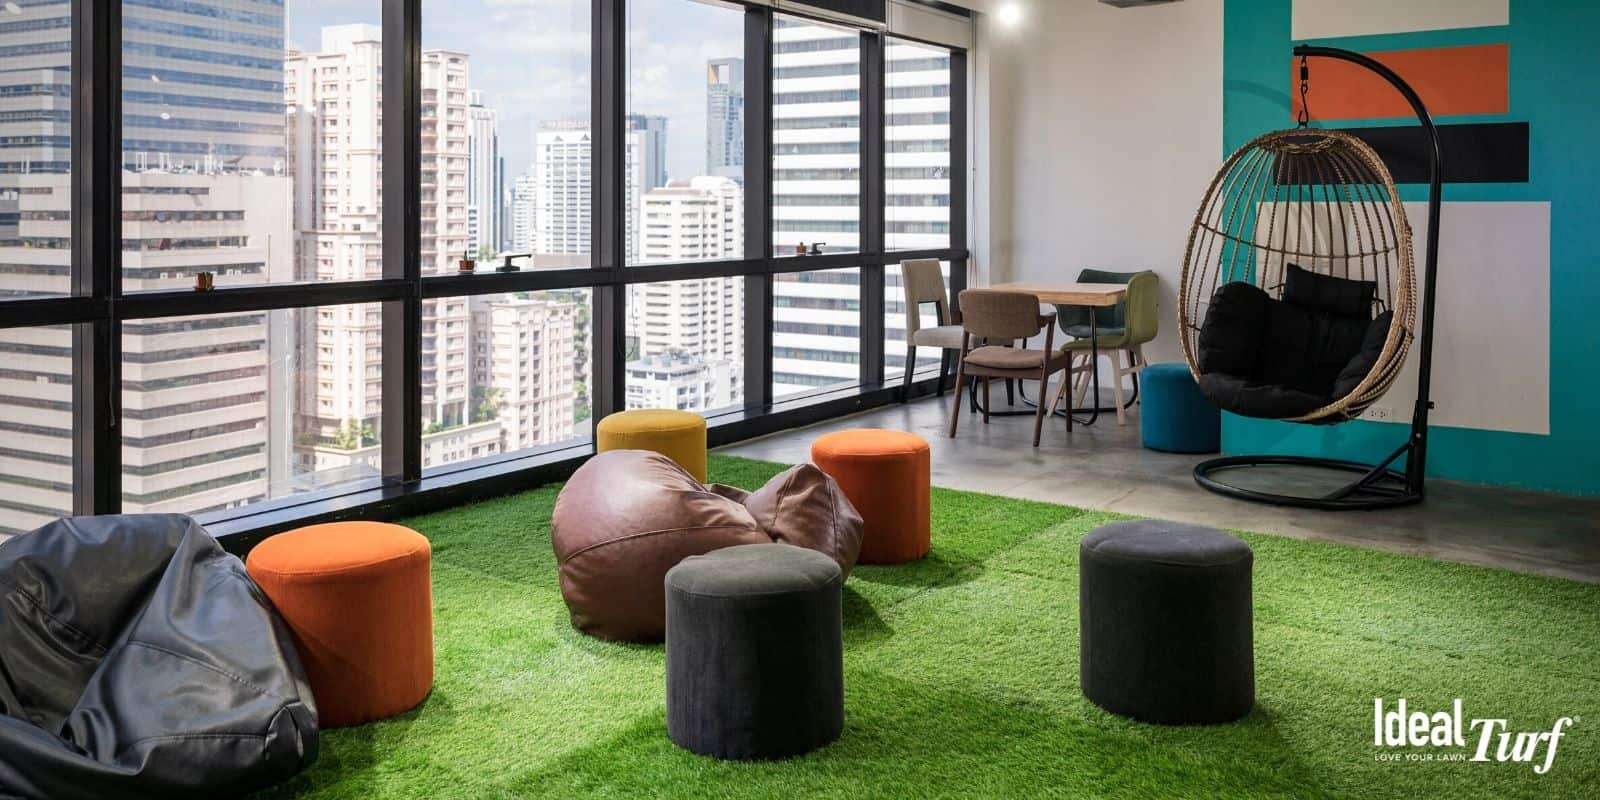 Office space with artificial grass on floor